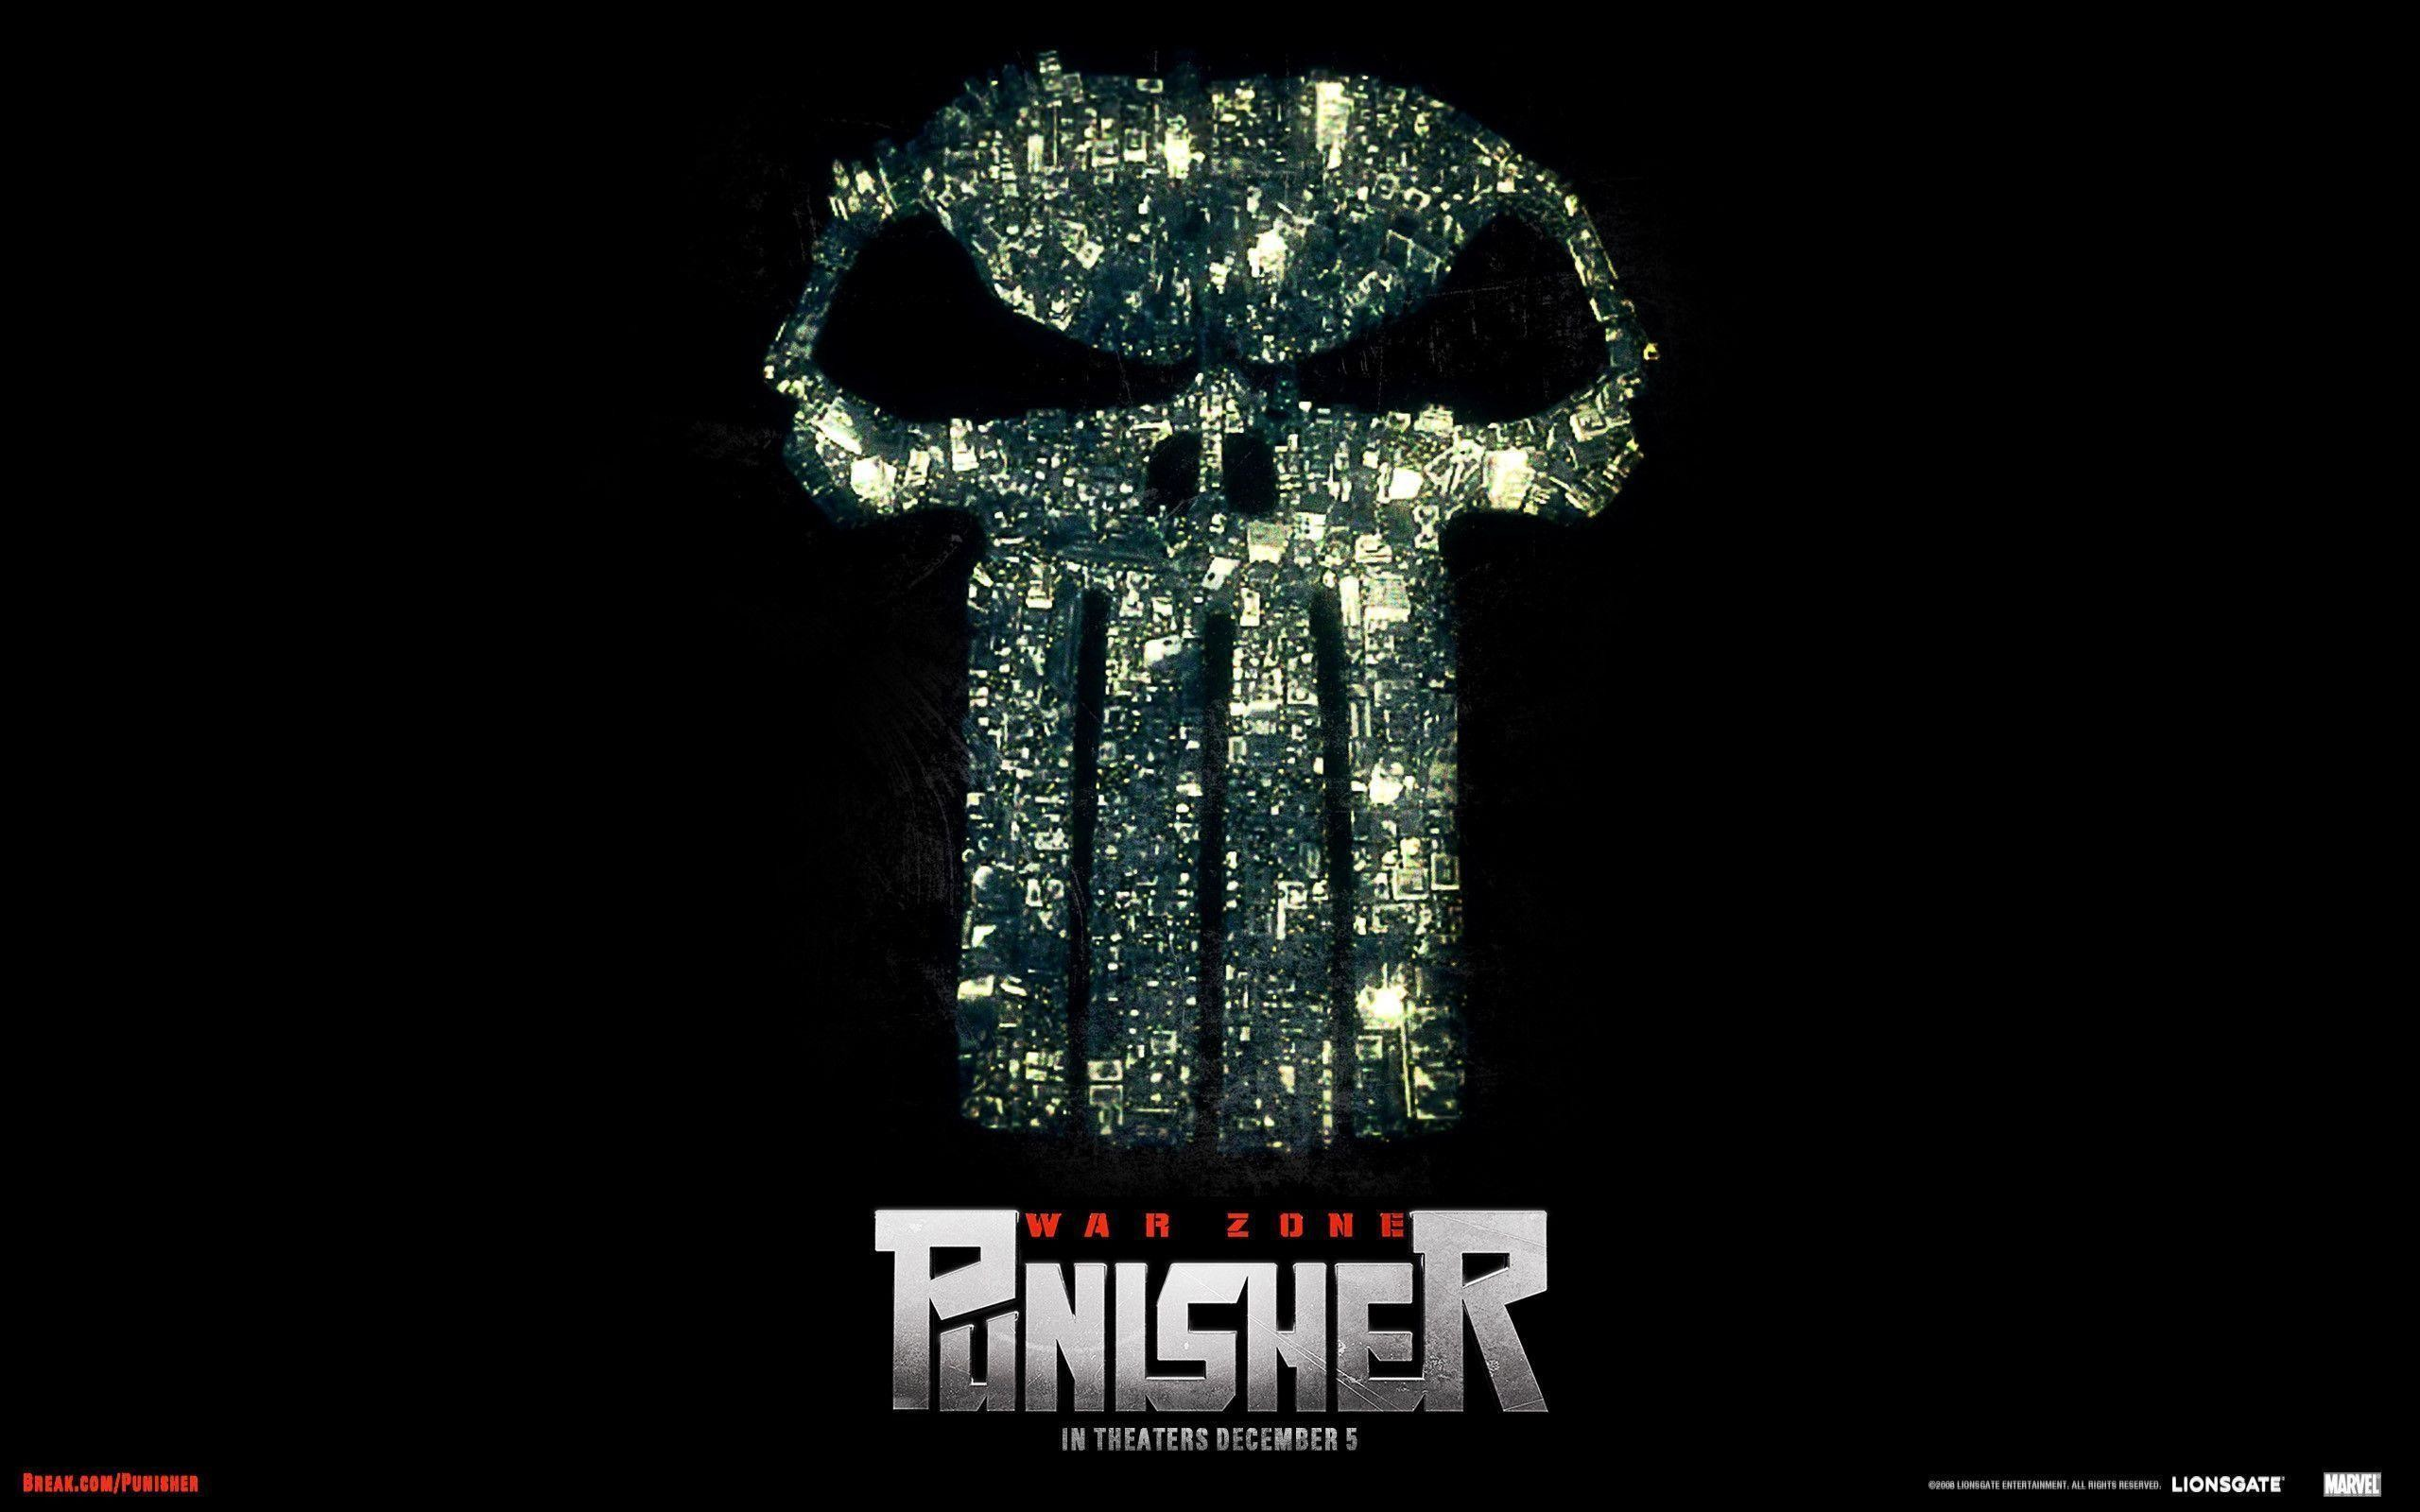 Punisher Phone Wallpaper 70 Images